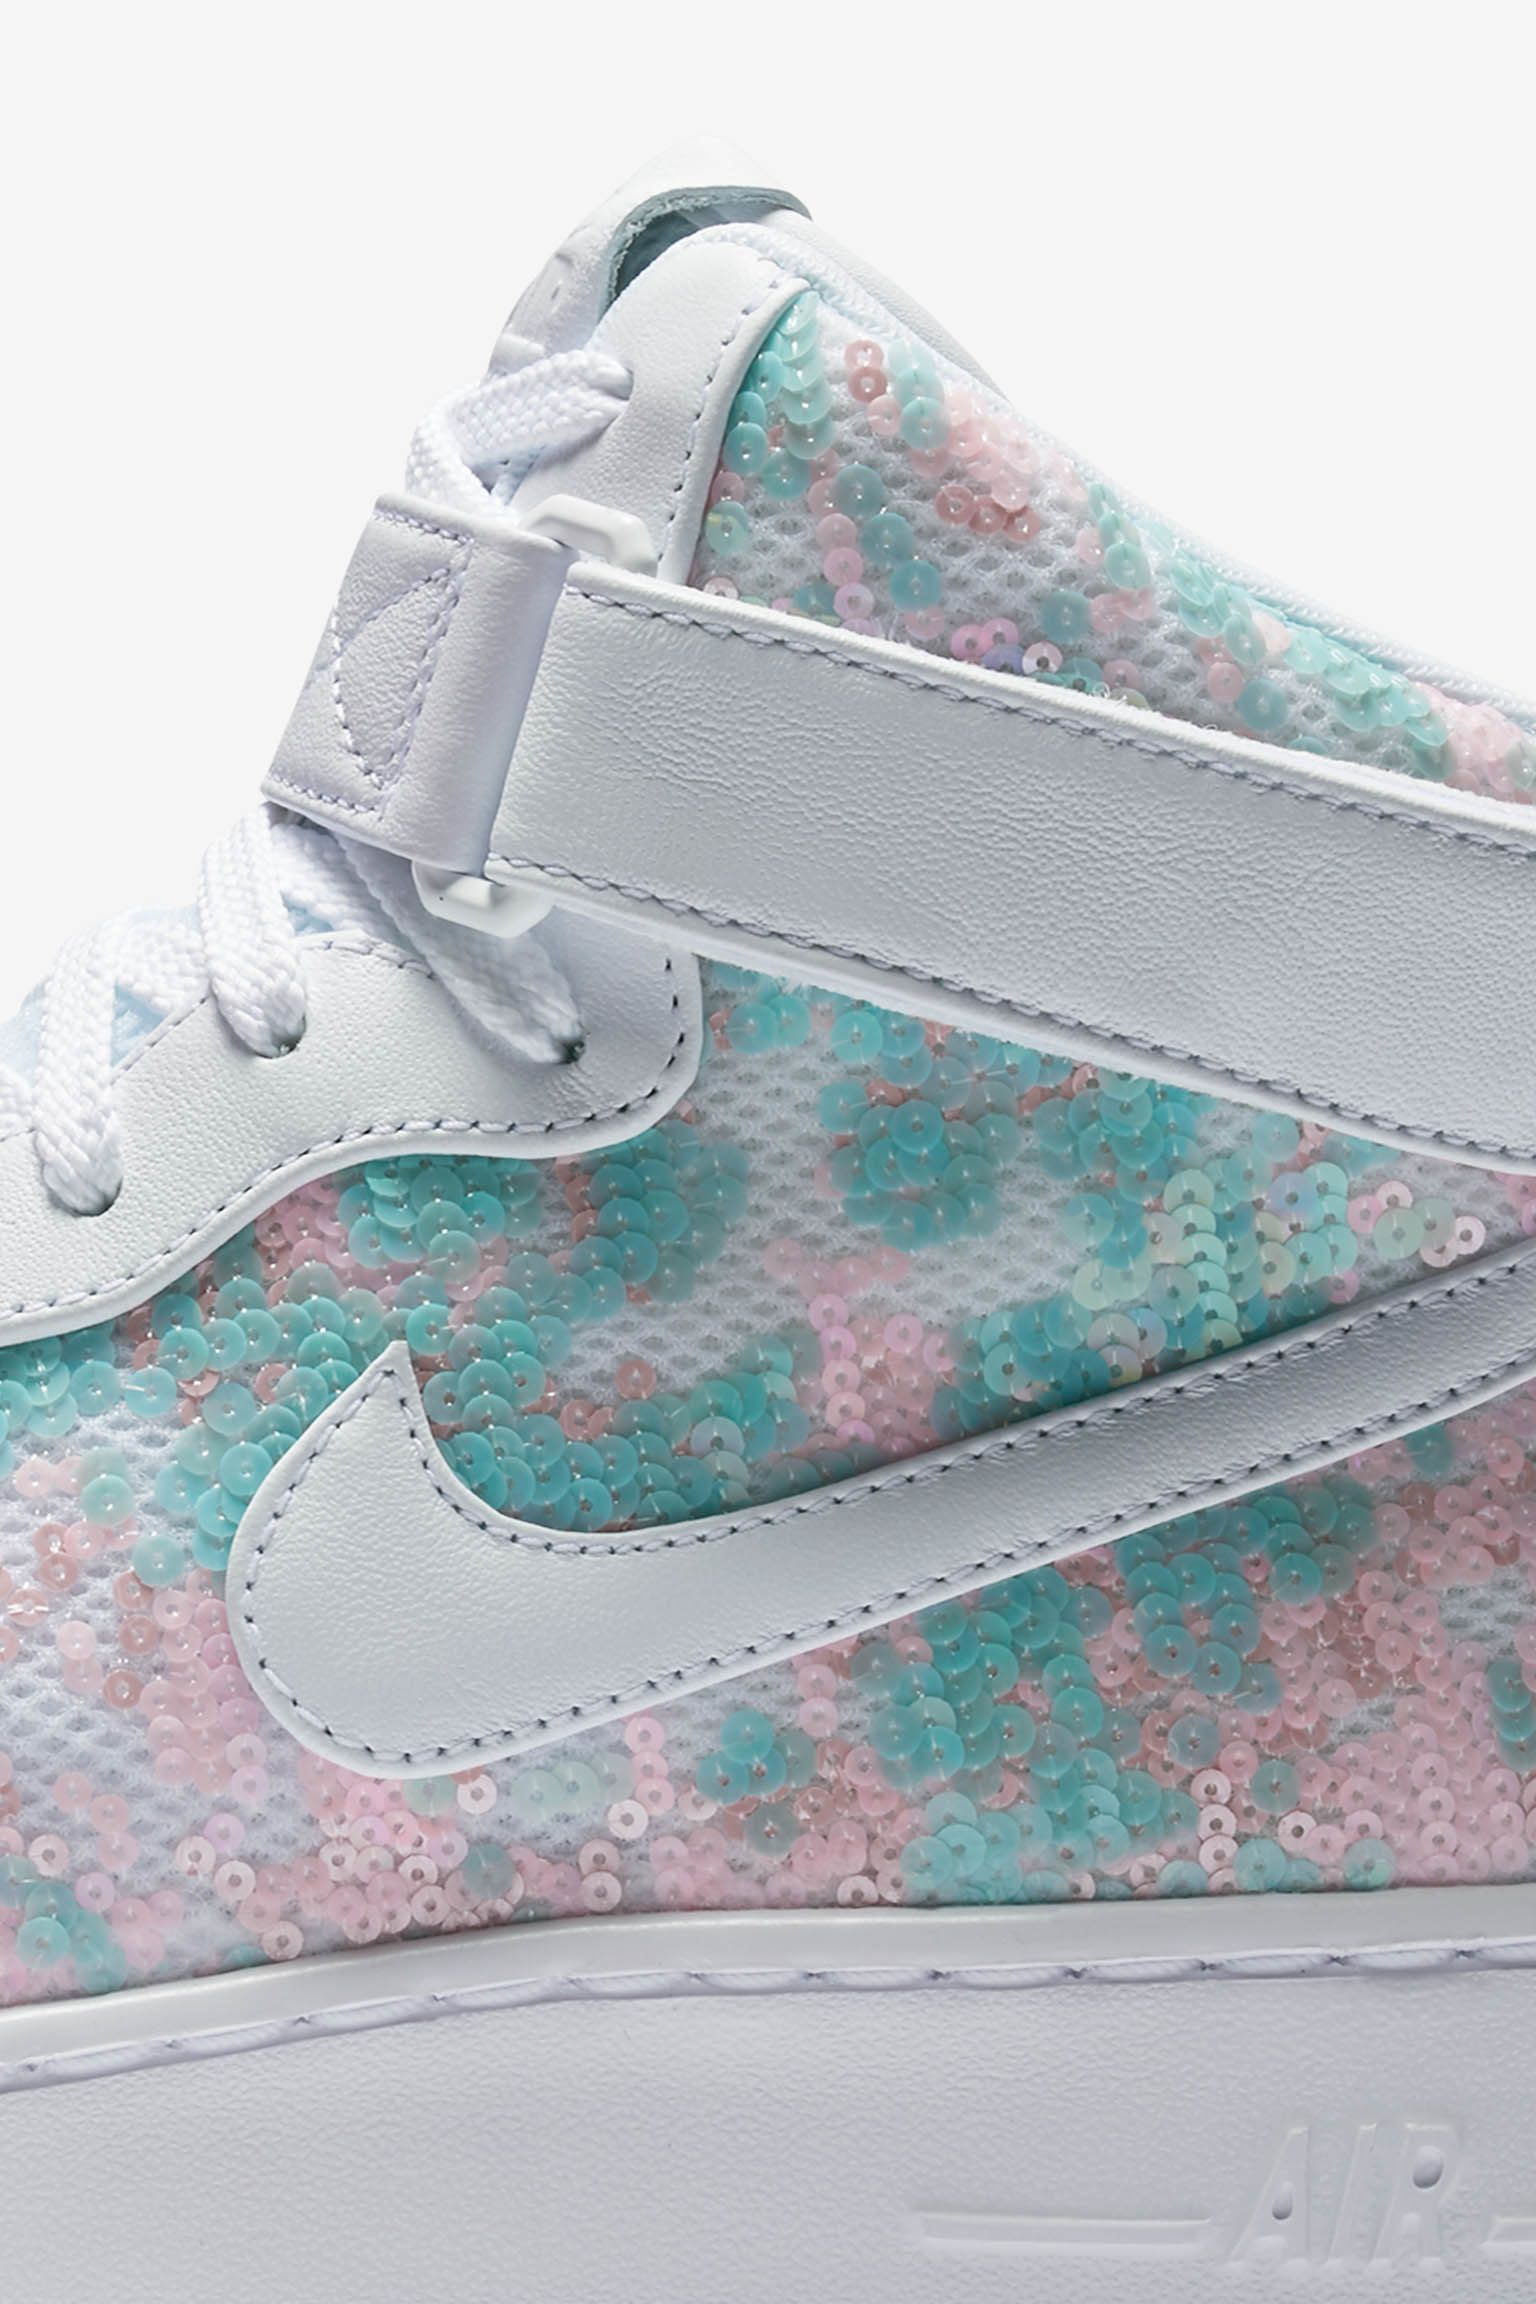 Women's Nike Air Force 1 Upstep High LX 'Summer Shine'